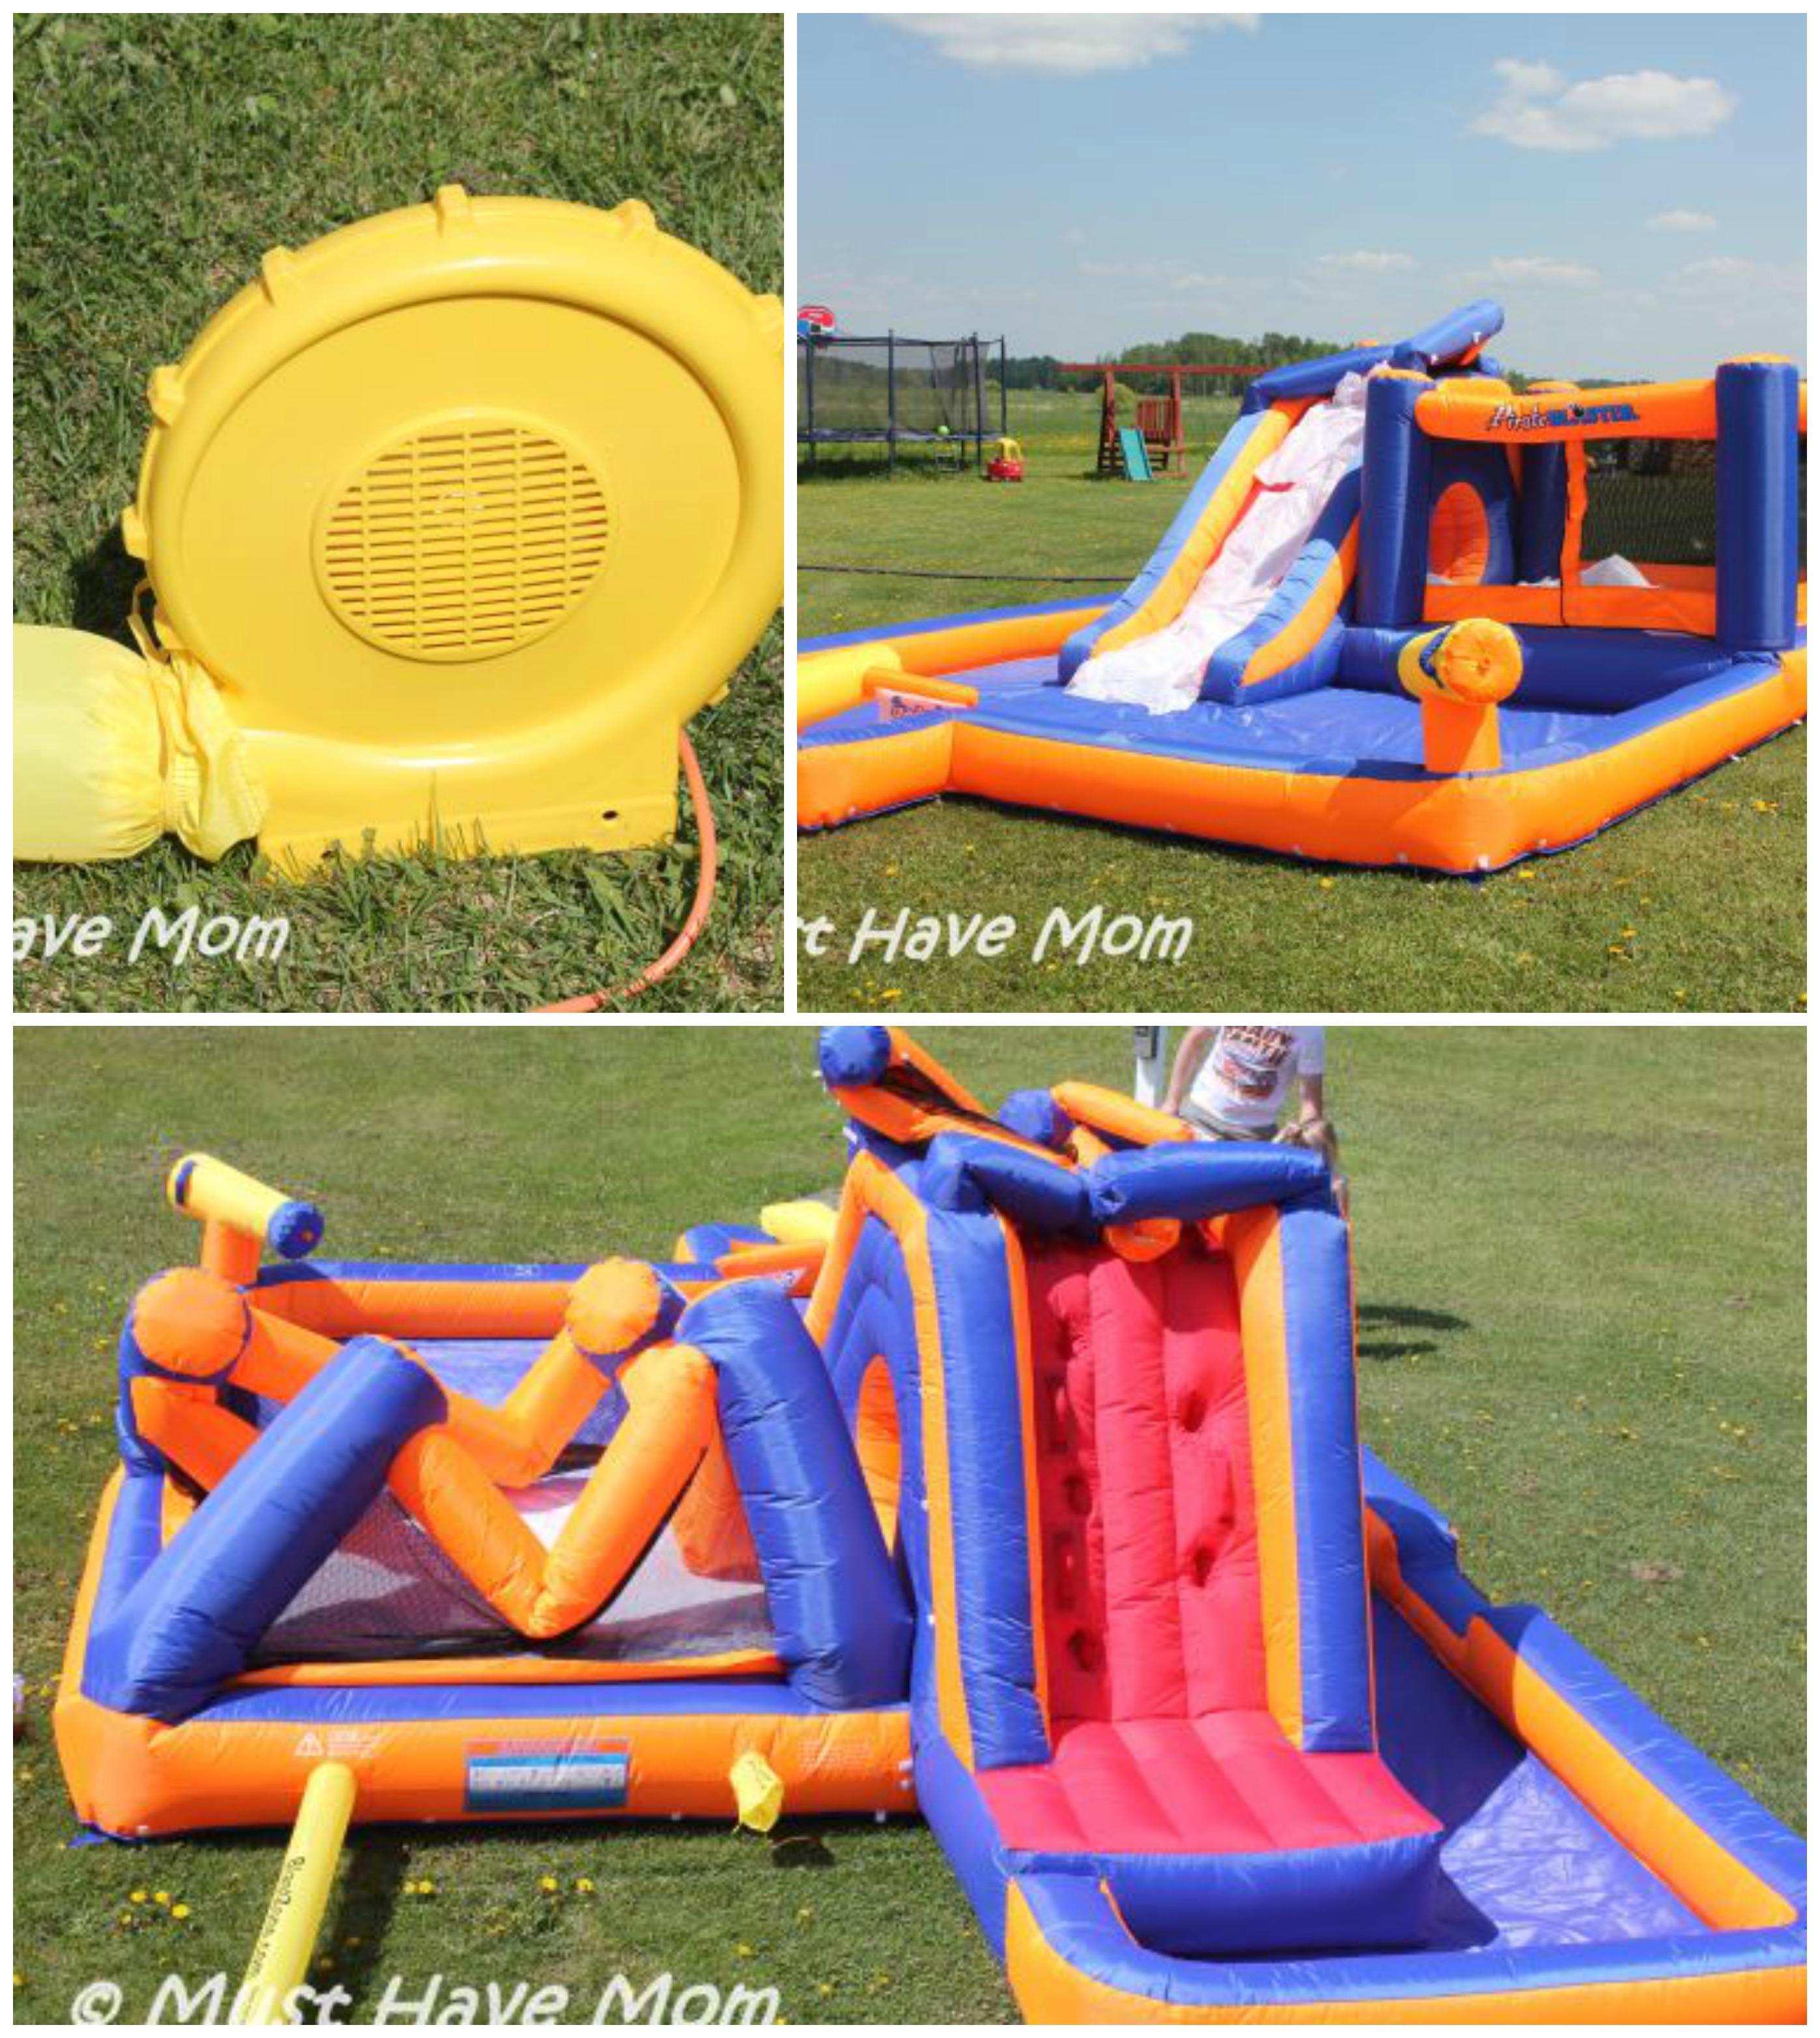 eca98ac72ccb Inflatable Pirate Water Park from Bounce Houses Now +  500 Gift Card